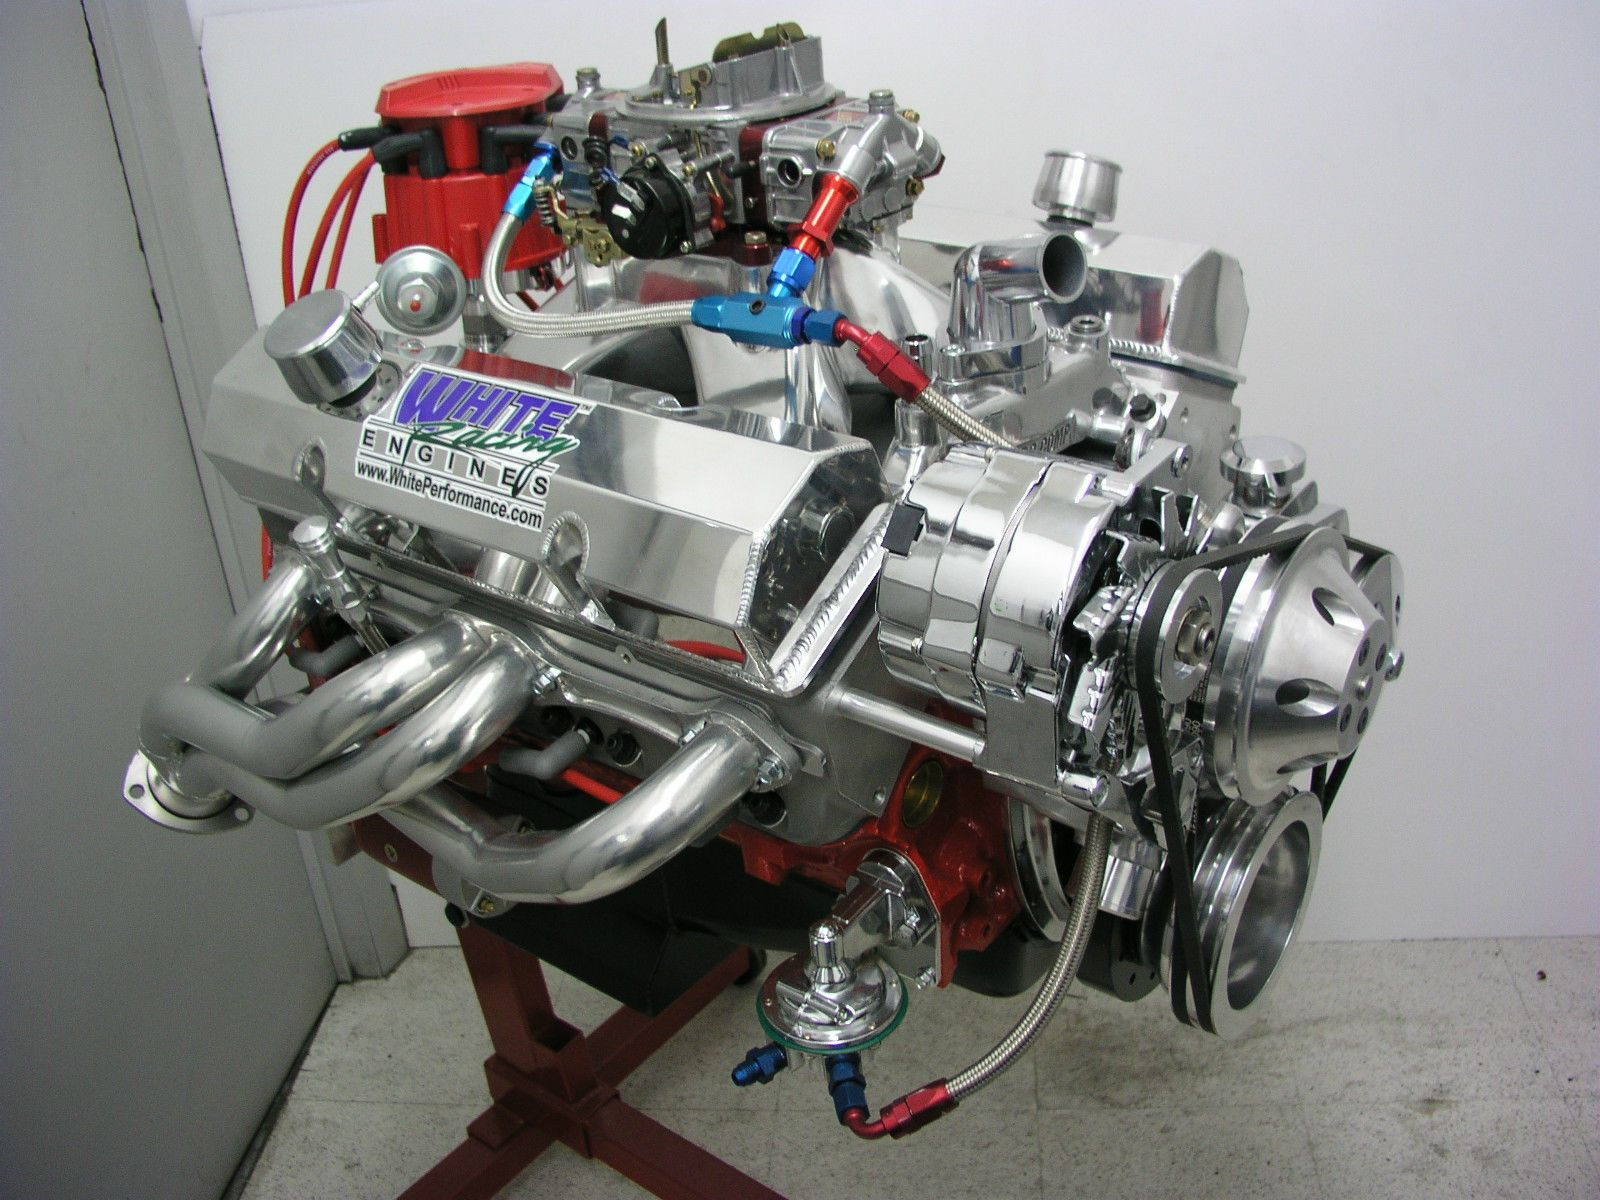 Details about sbc 383 stroker engine hyd roller cam 450 hp